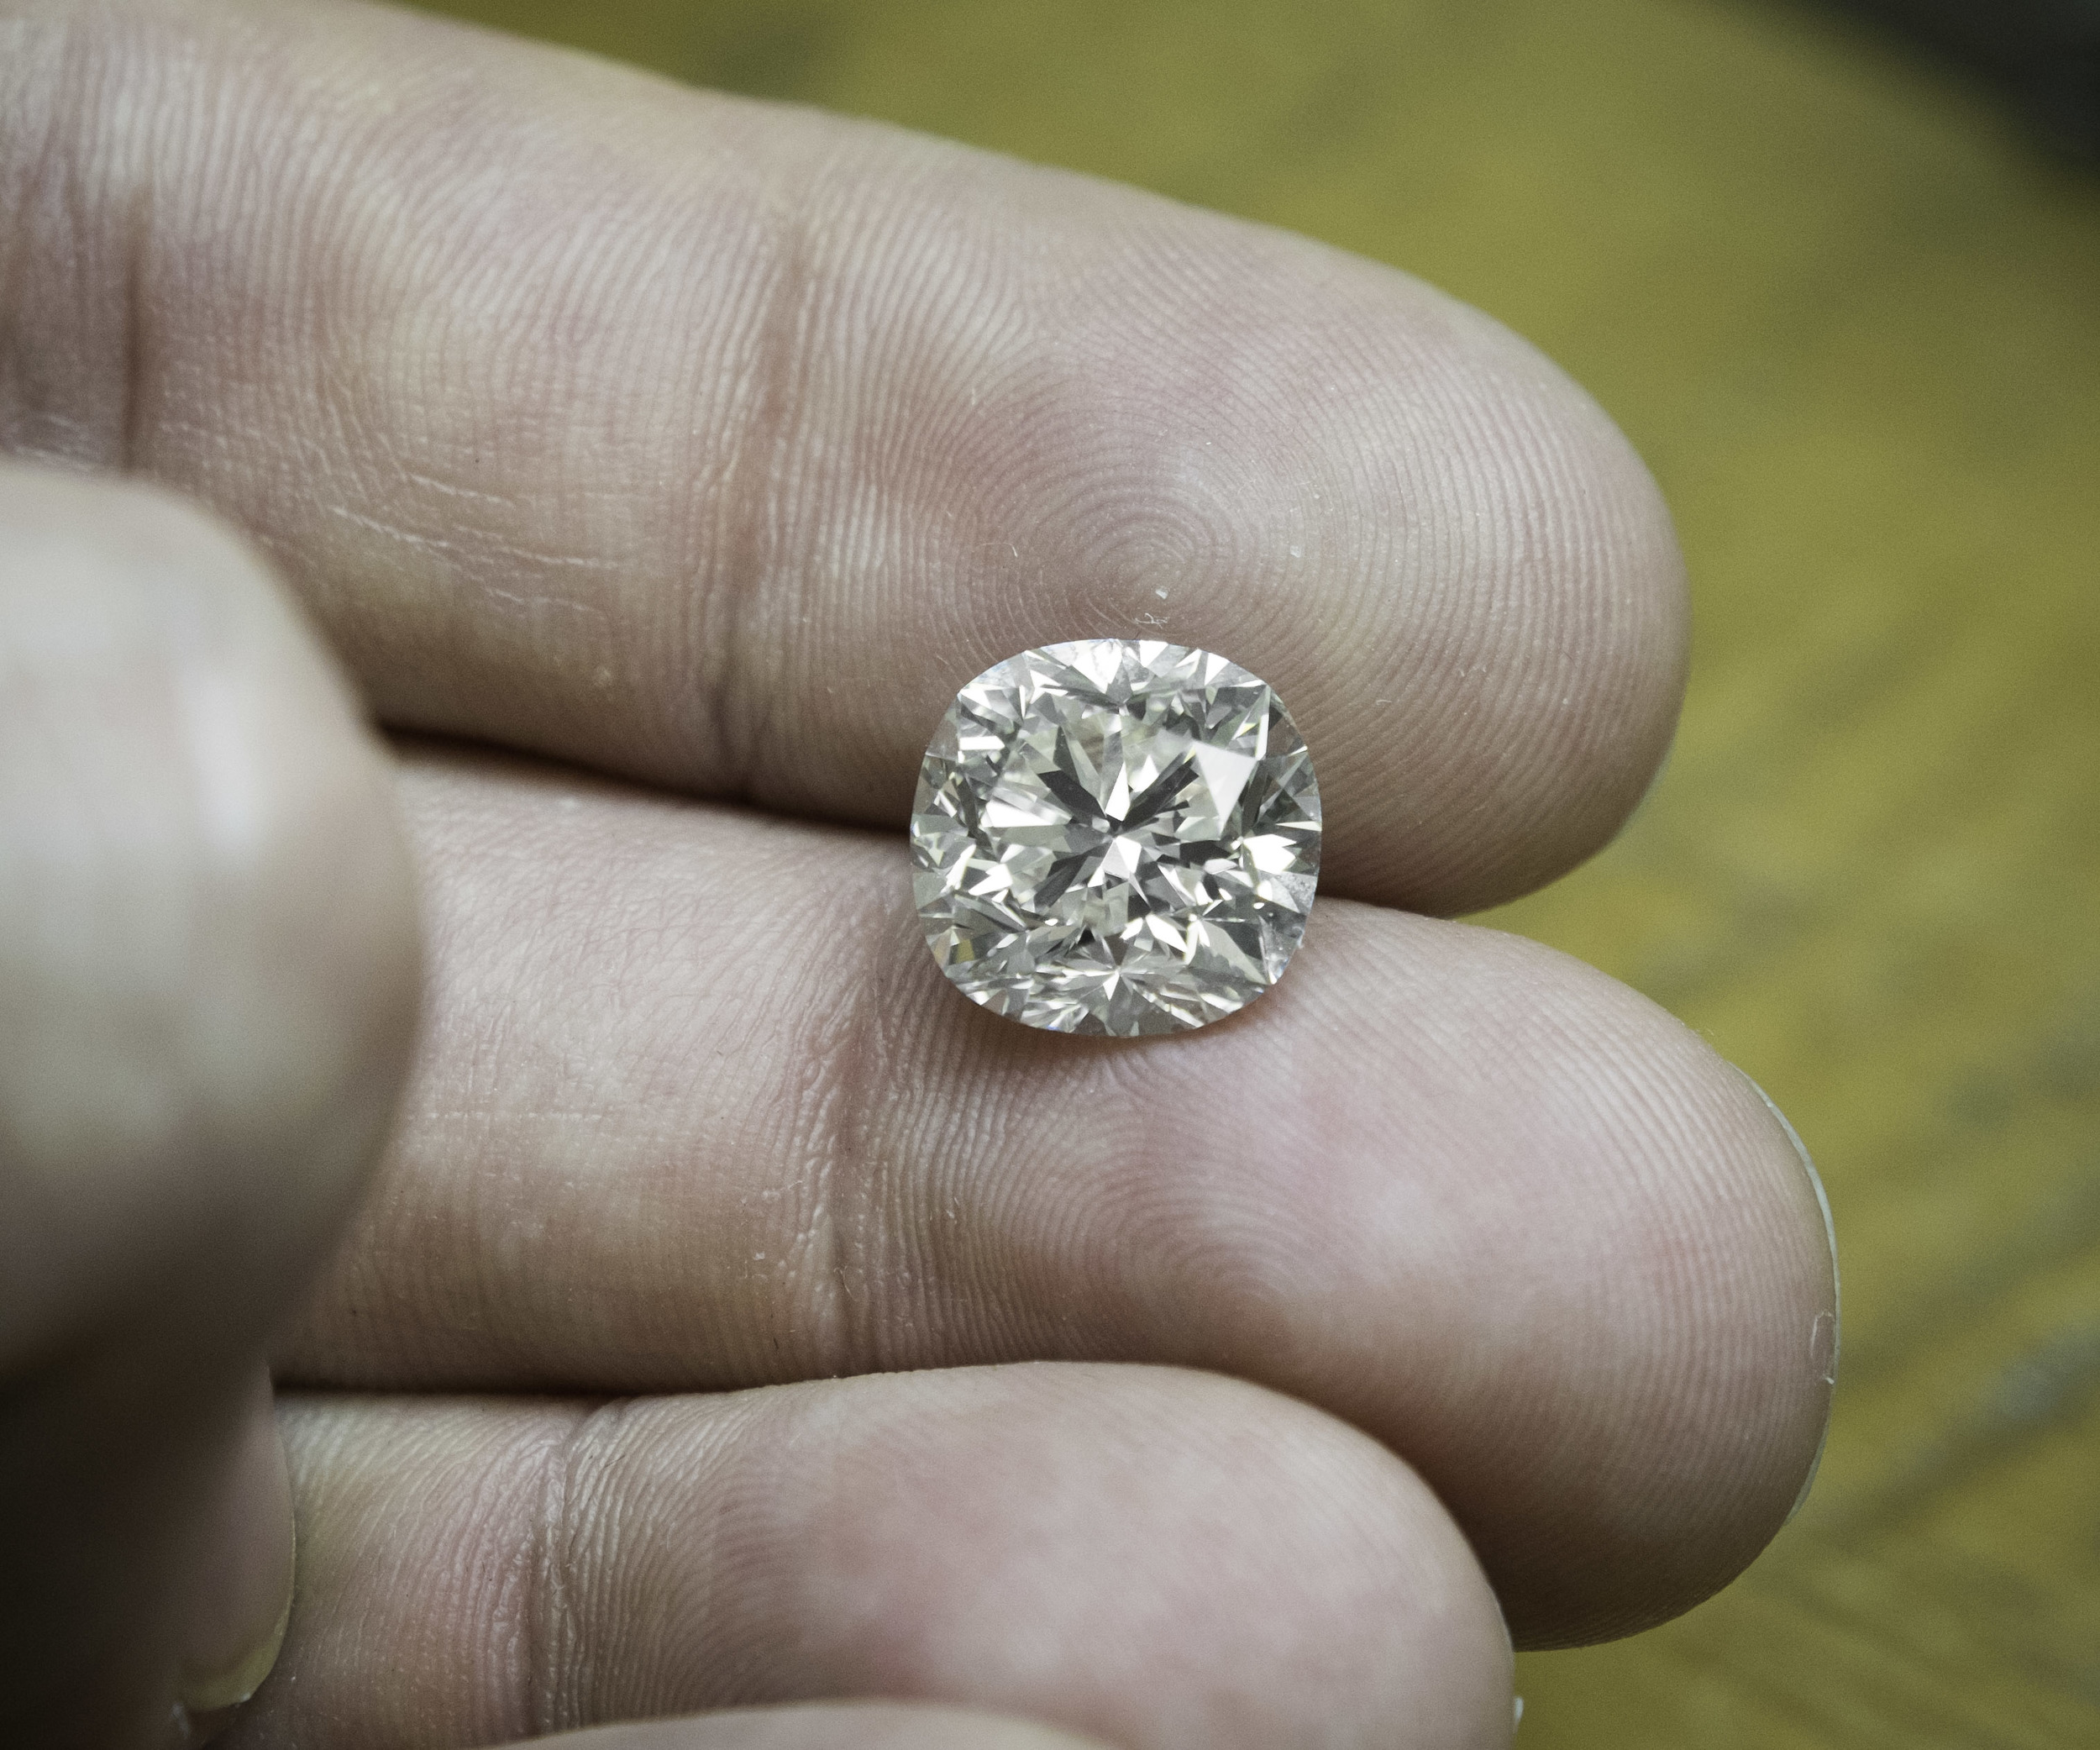 A Stunning 5ct cushion cut - It just so happens to be K color VS2.